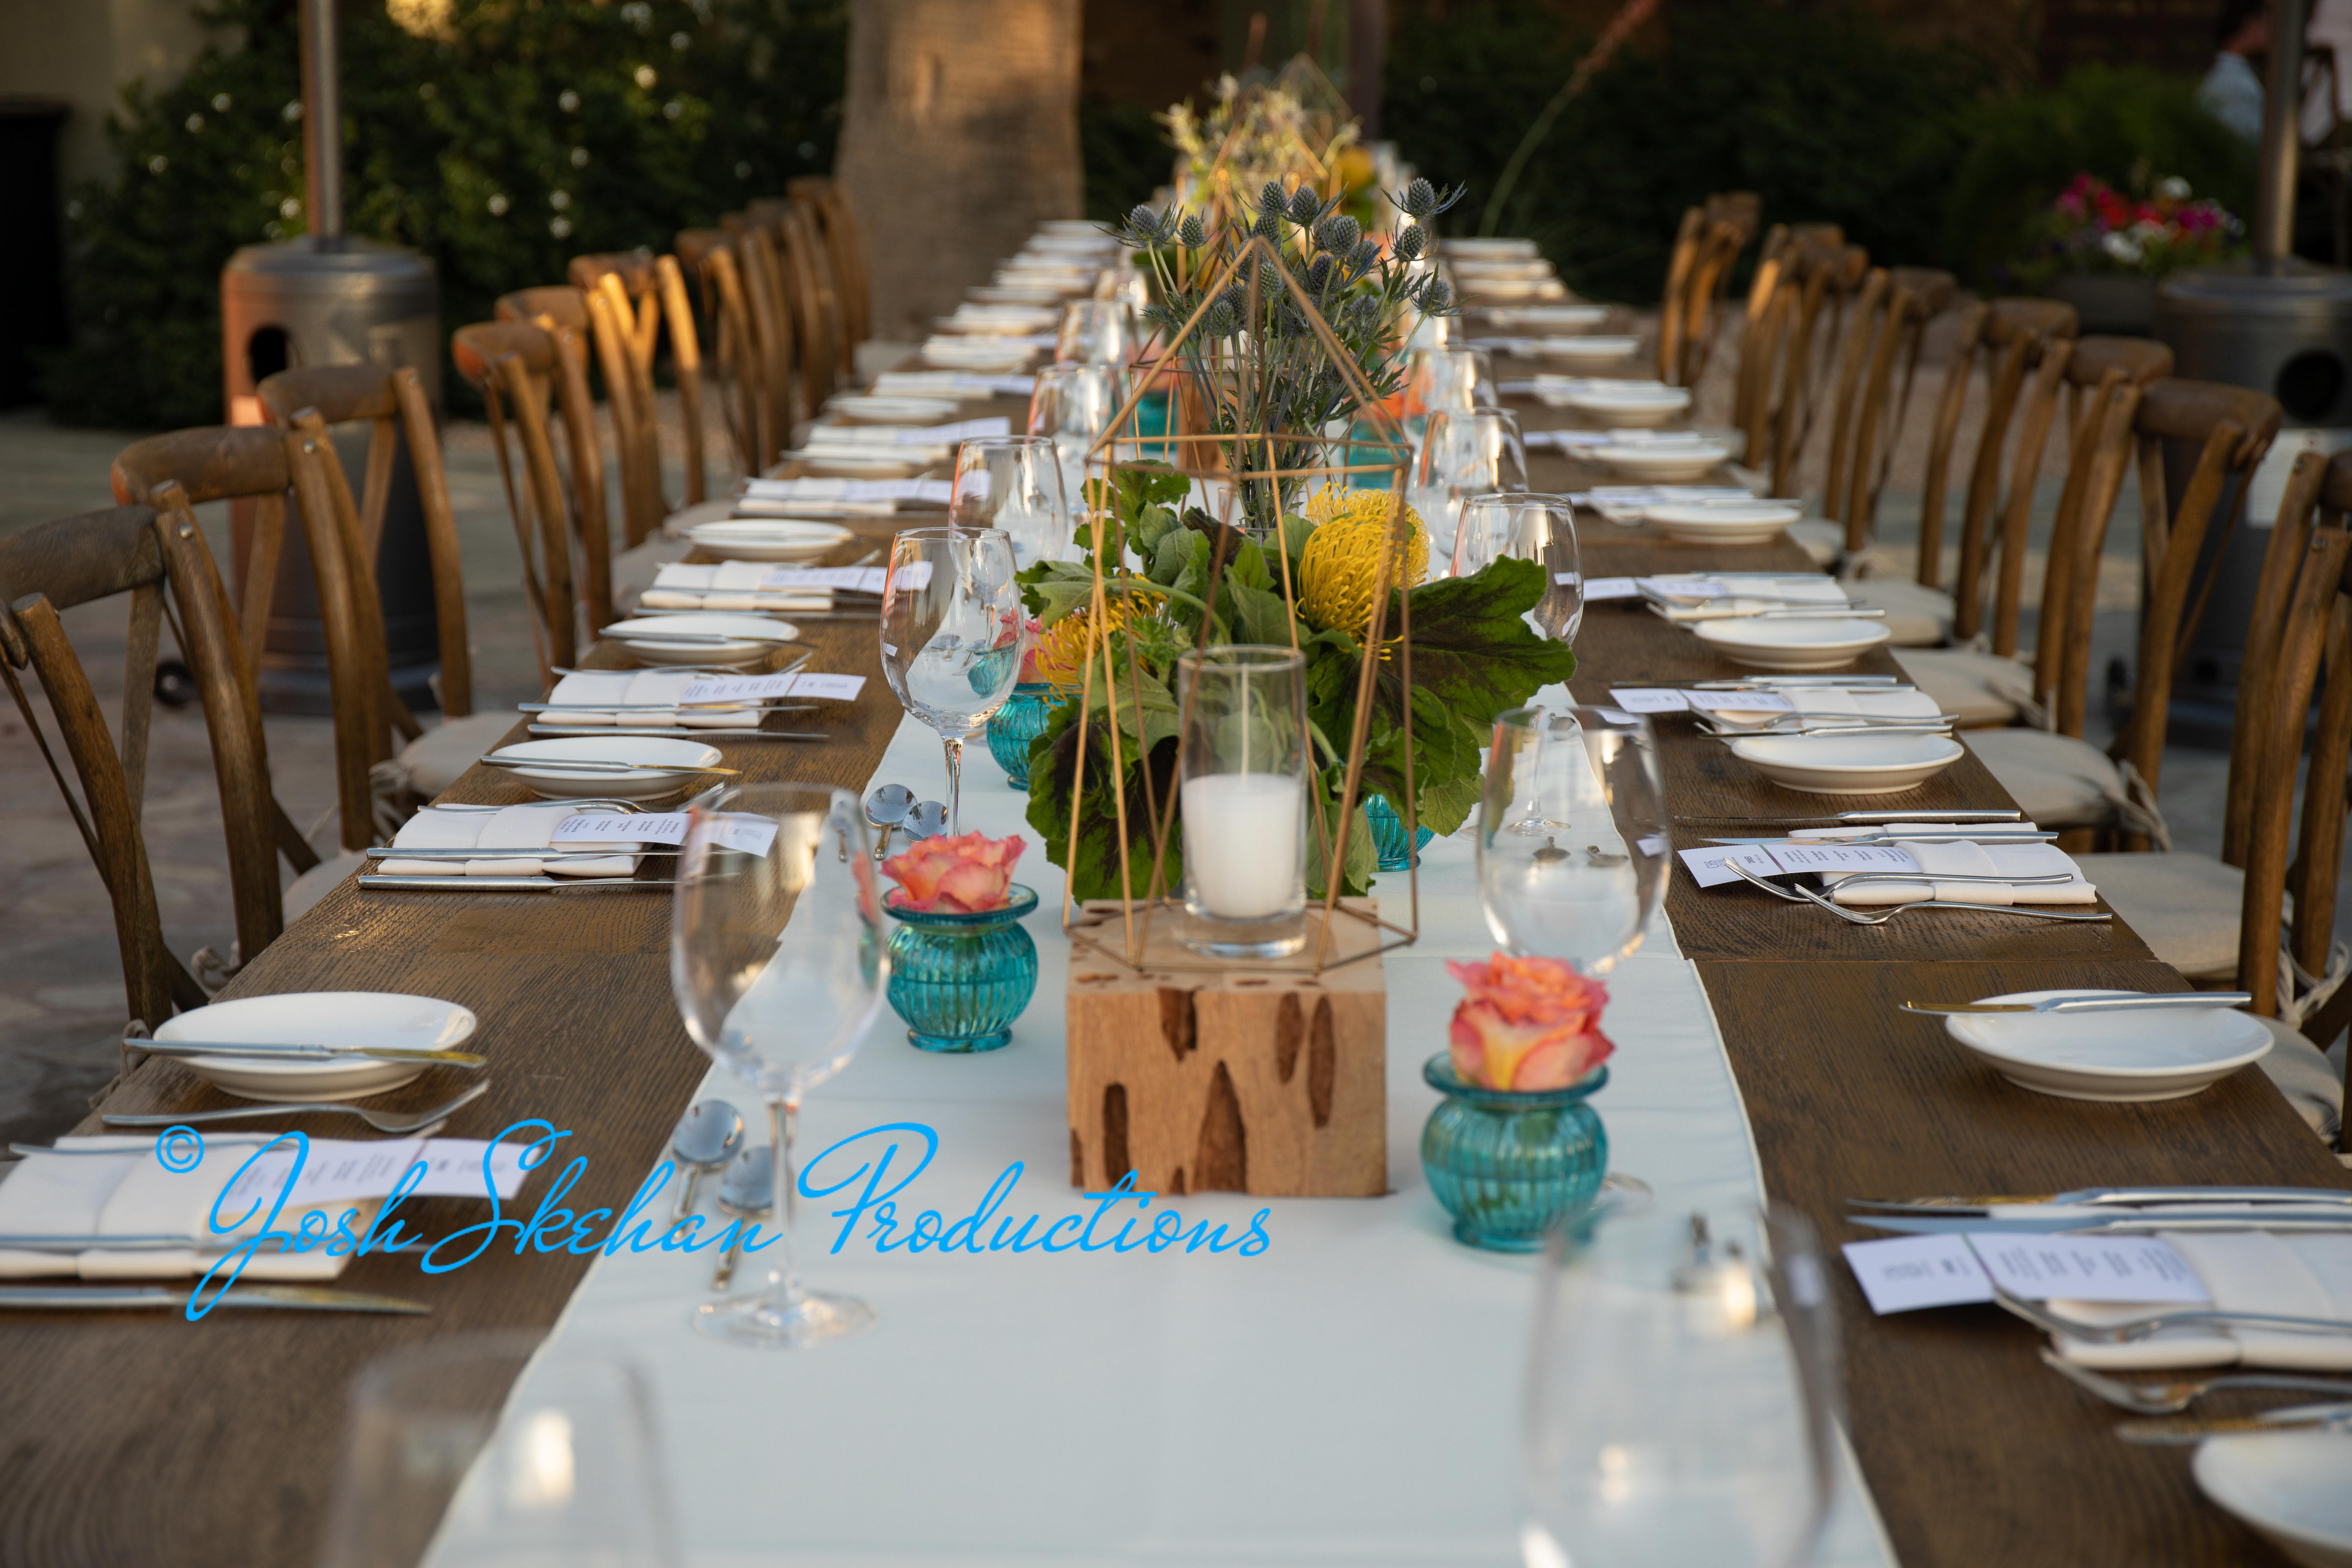 15 event photographer - scottsdale - din